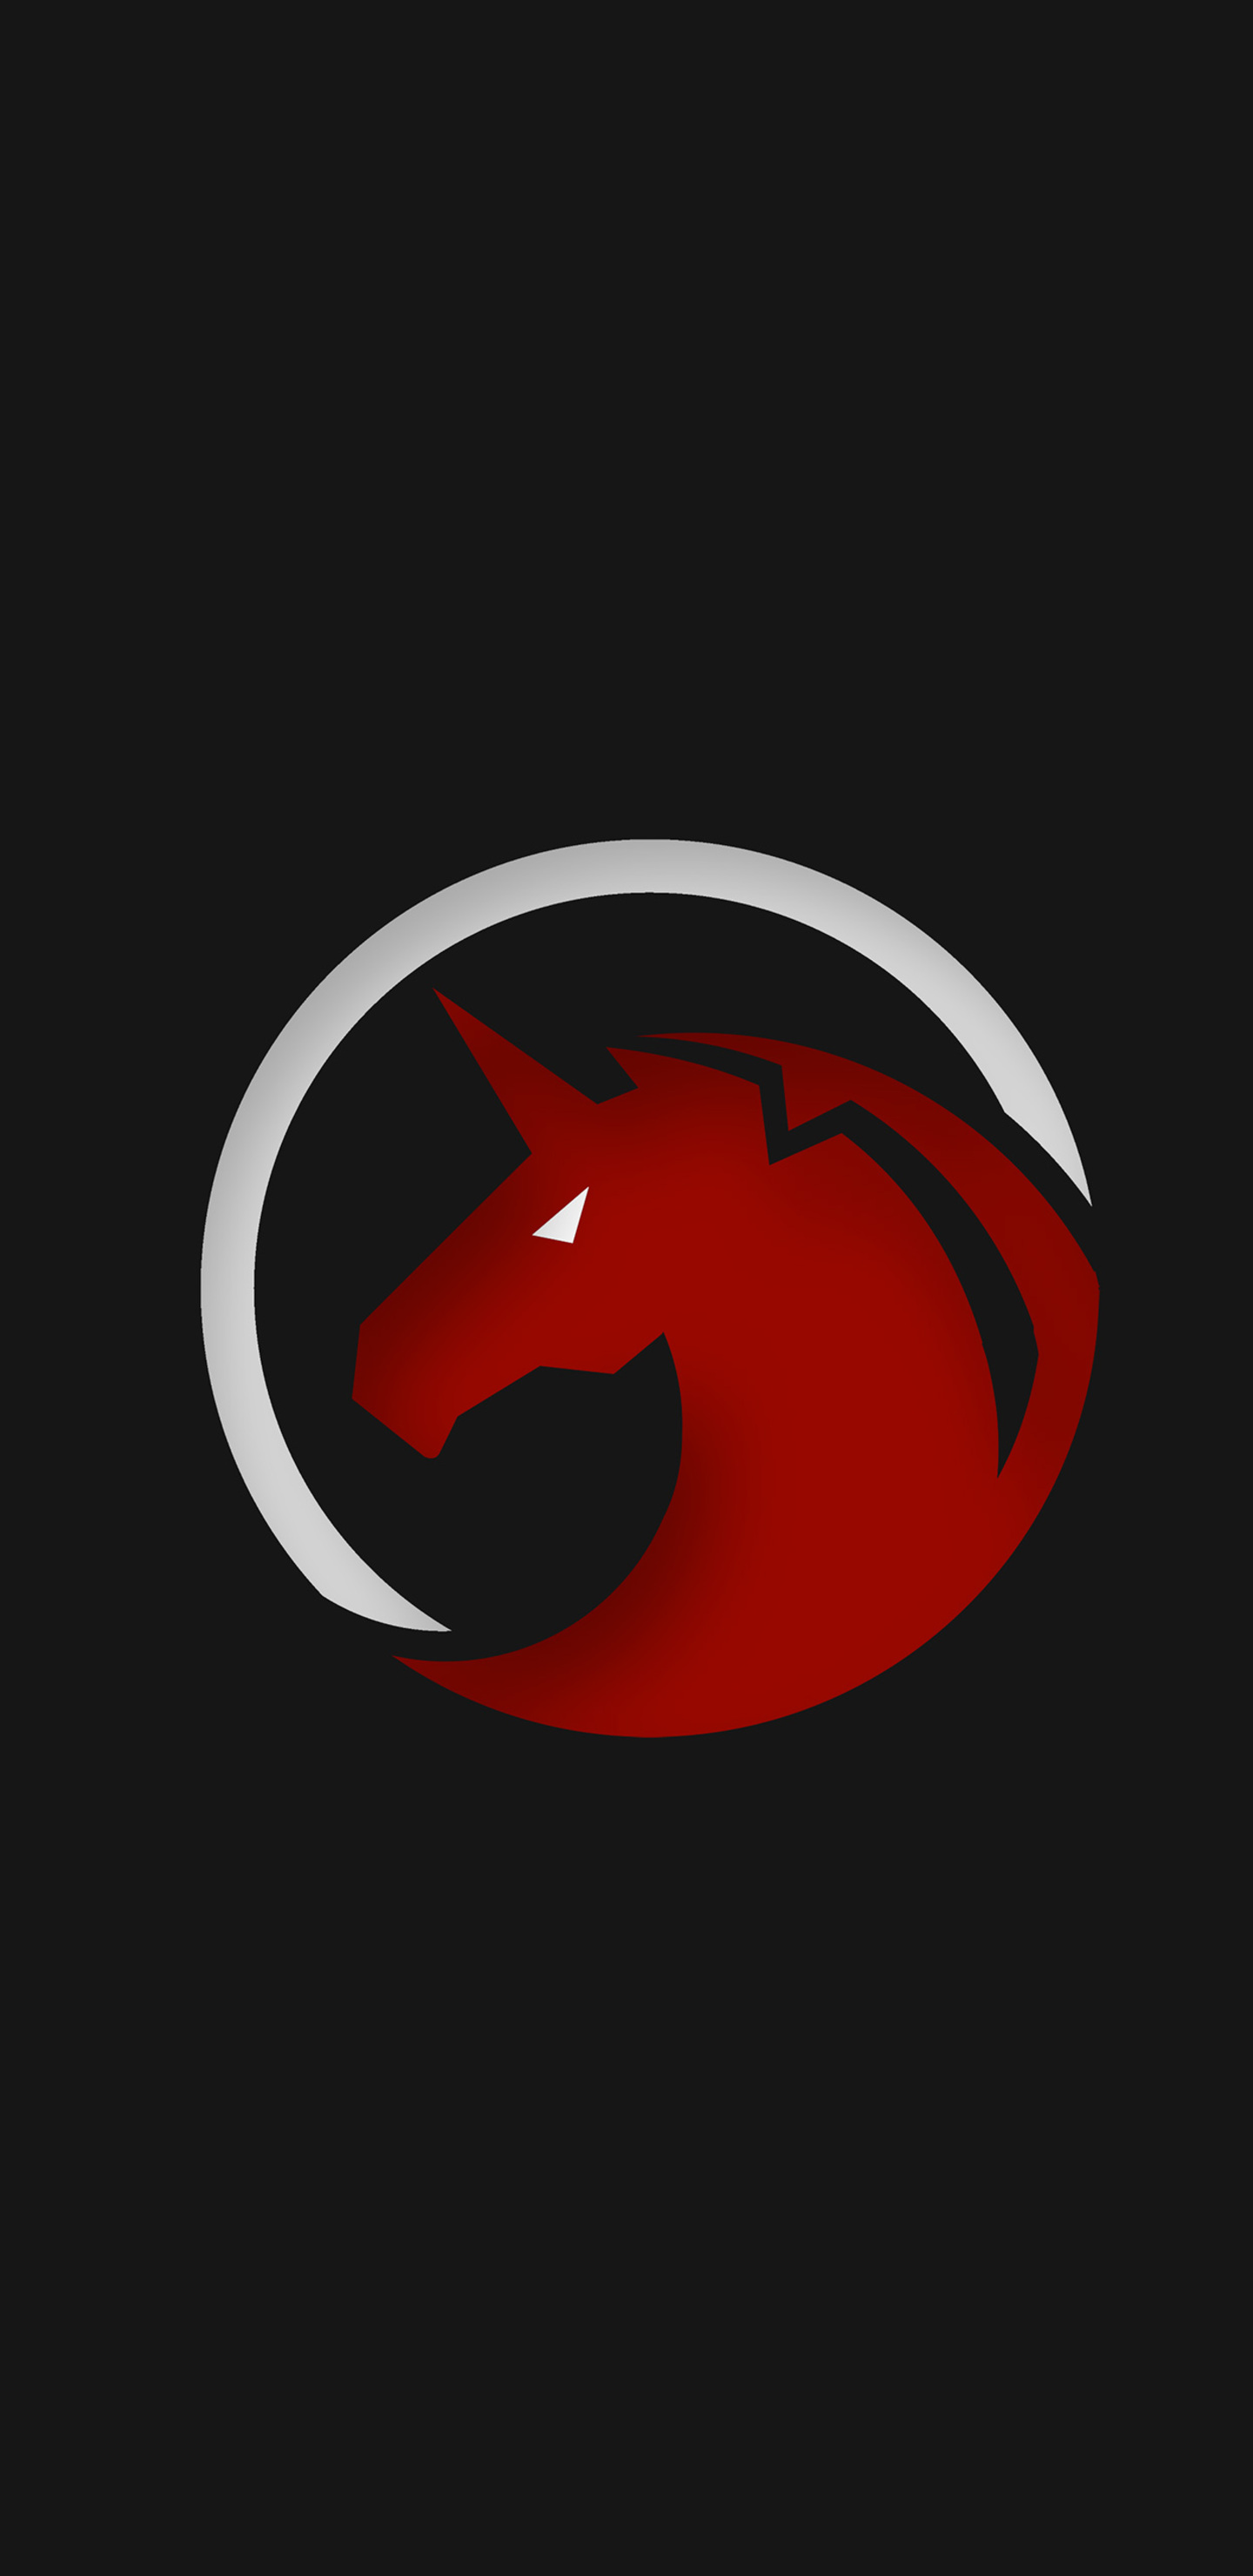 1440x2960 Red Unicorn Logo 4k Samsung Galaxy Note 9 8 S9 S8 S8 Qhd Hd 4k Wallpapers Images Backgrounds Photos And Pictures